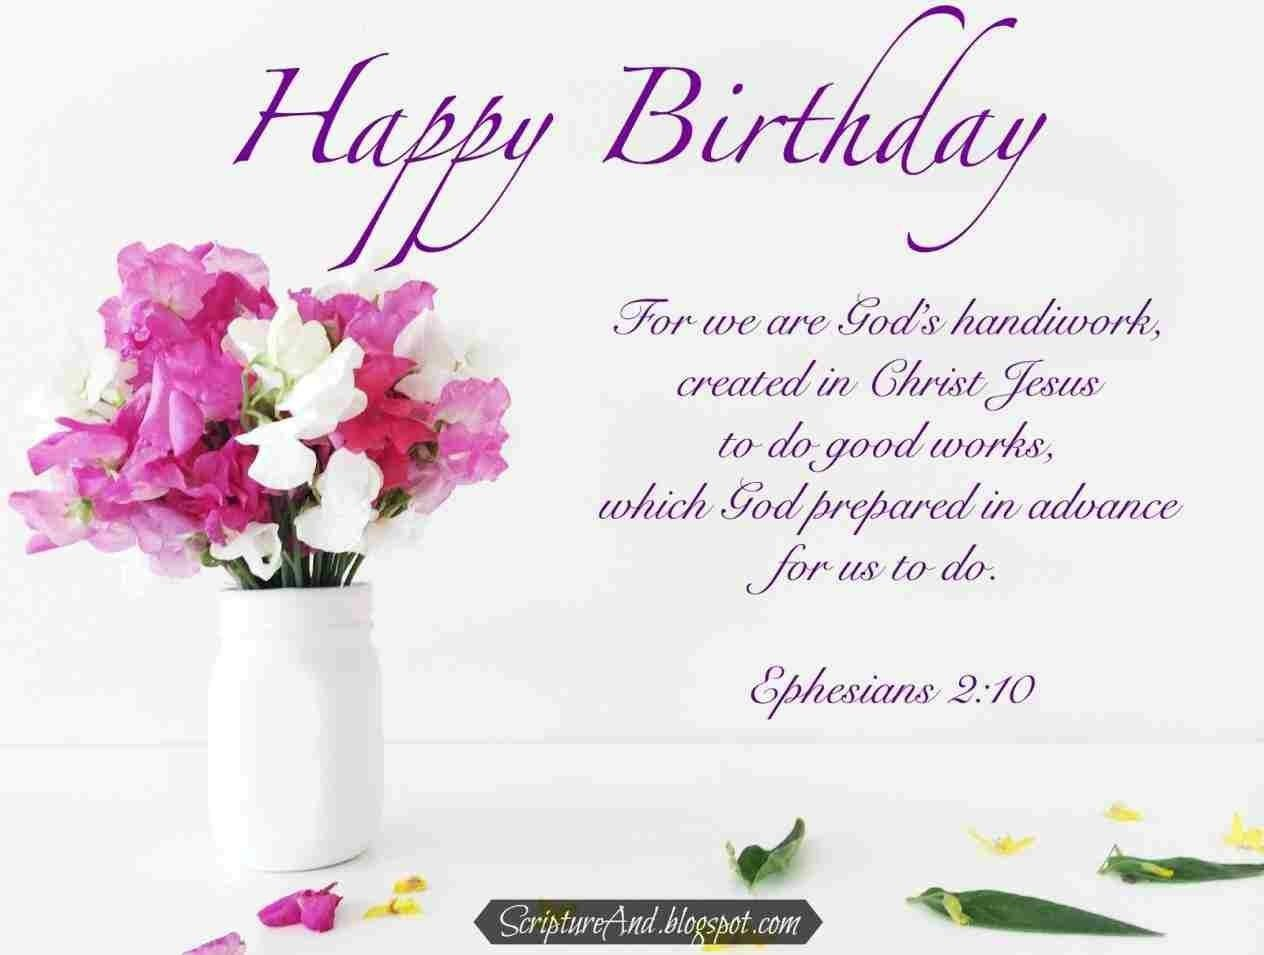 20 inspirational bible quotes for 21st birthday happy